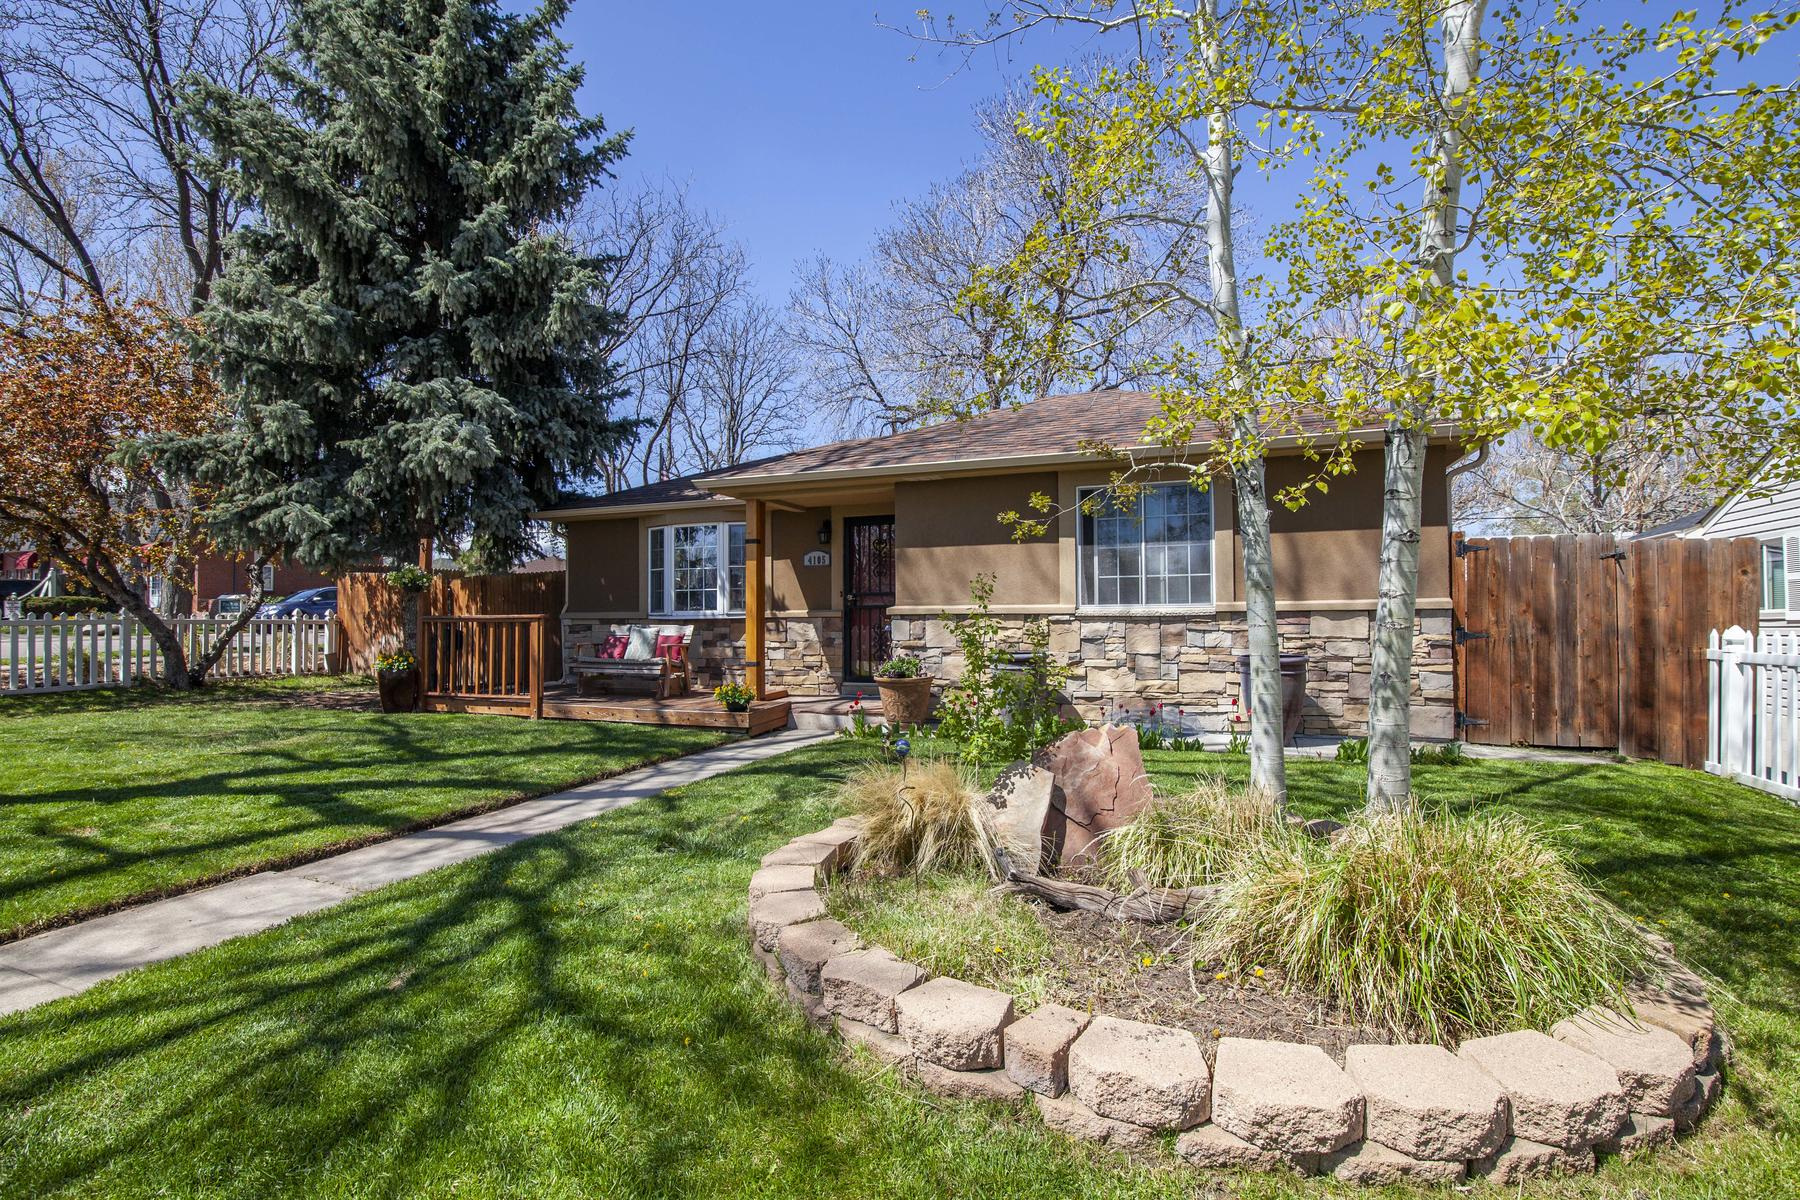 Single Family Homes for Sale at Have You Ever Imagined Owning the Quintessential White Picket Fence Home? 4105 Gray Street, Wheat Ridge, Colorado 80212 United States